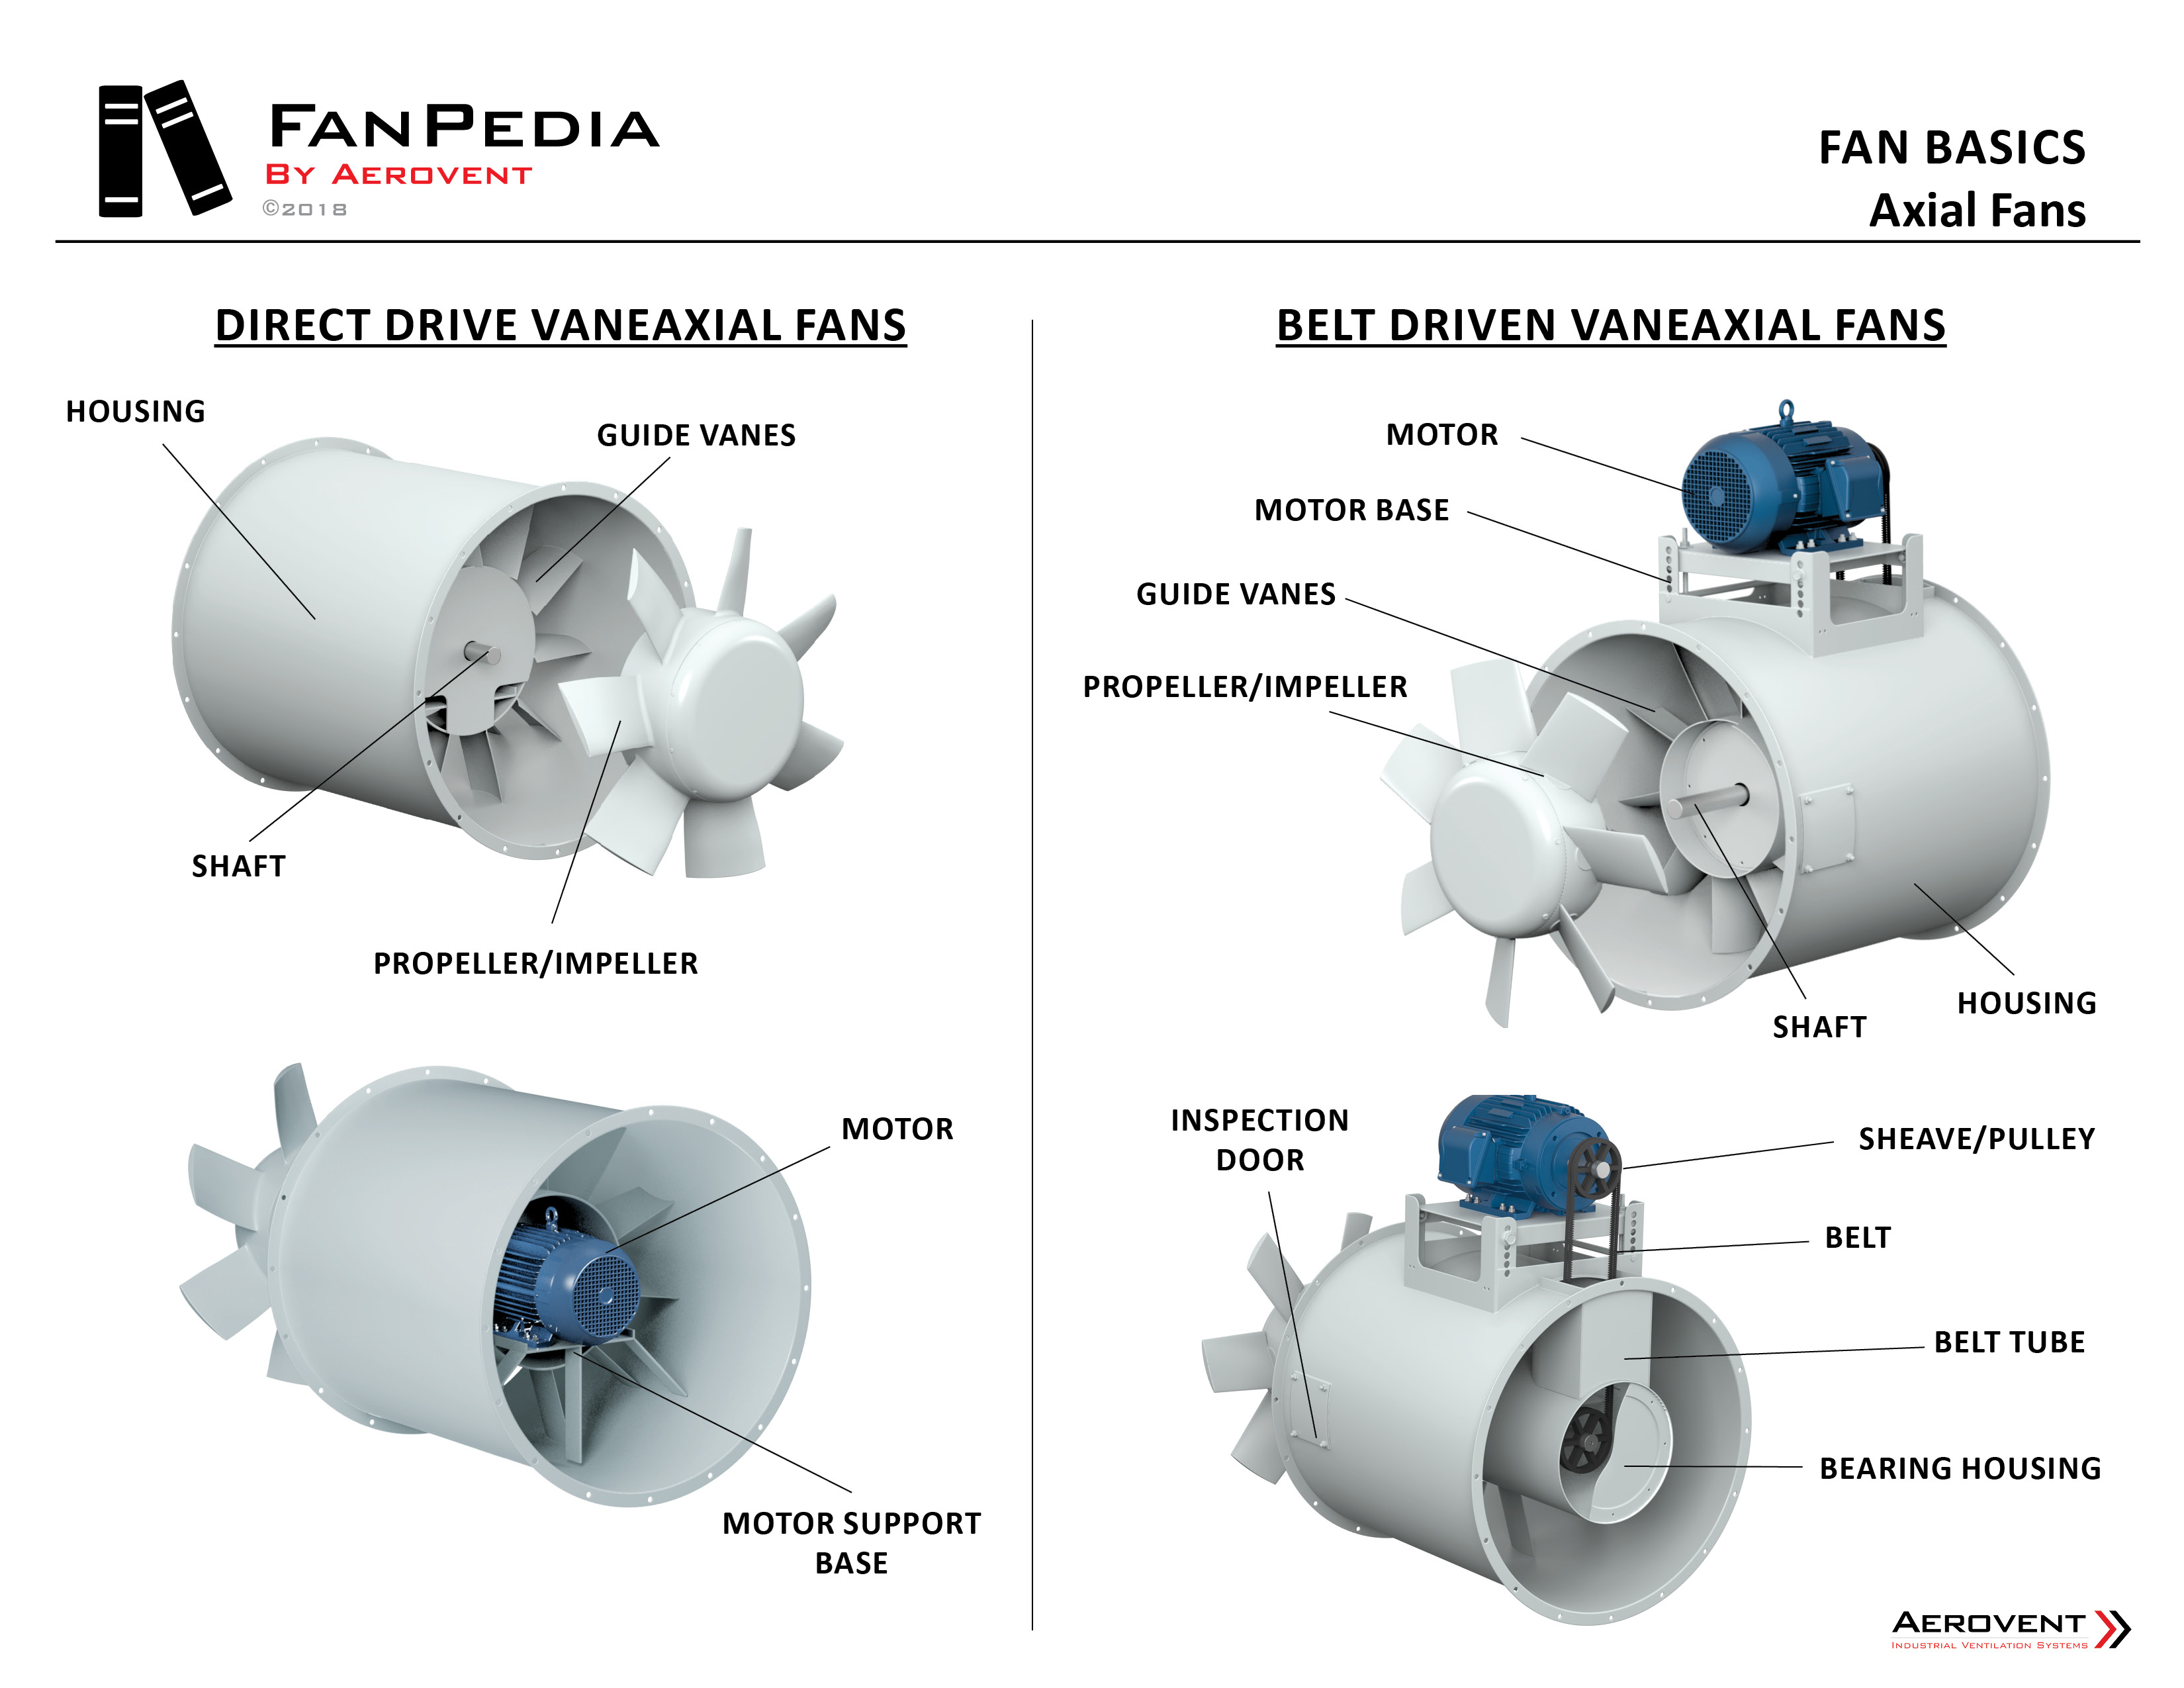 Fan Basics - Exploded Views4